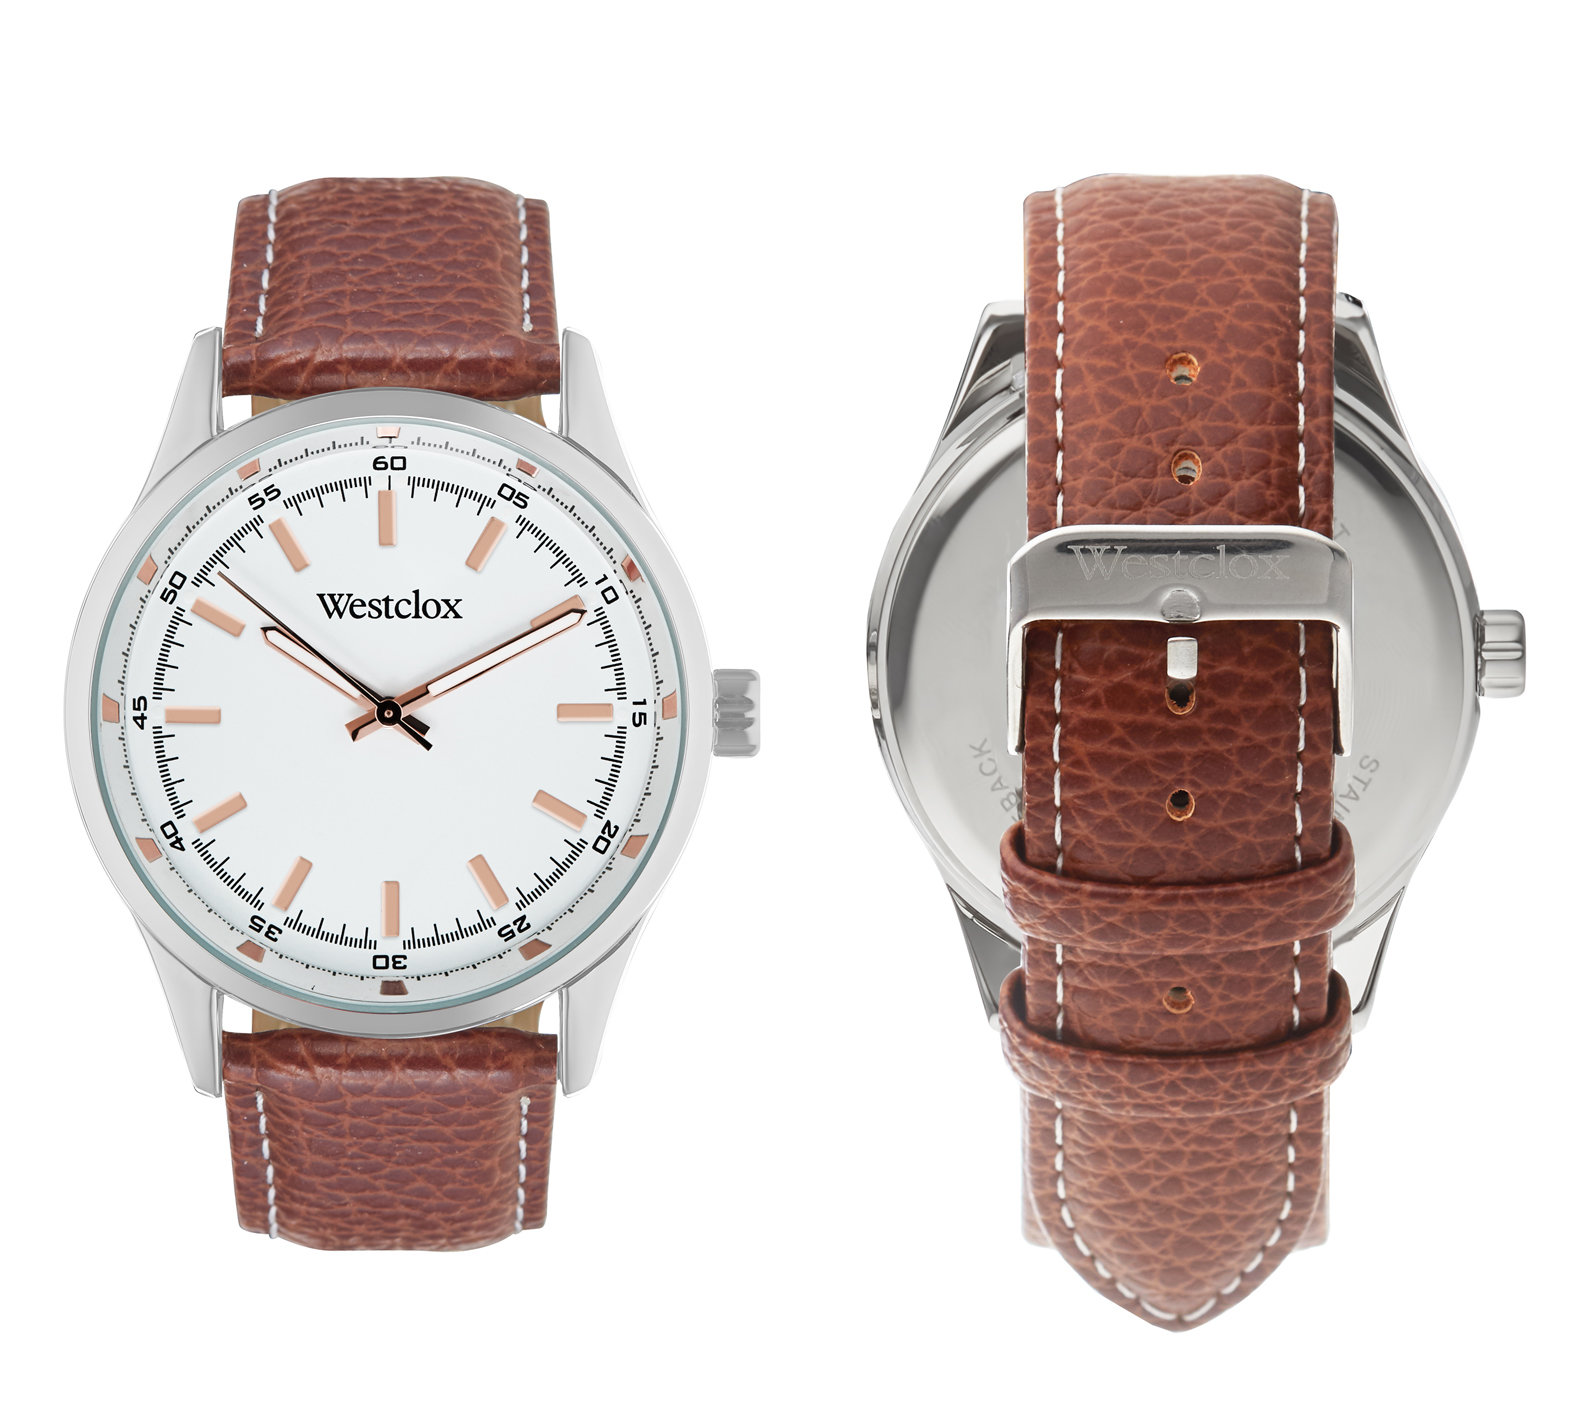 Westclox Watch with Genuine Brown Leather Band and Rose Gold Accents 51000